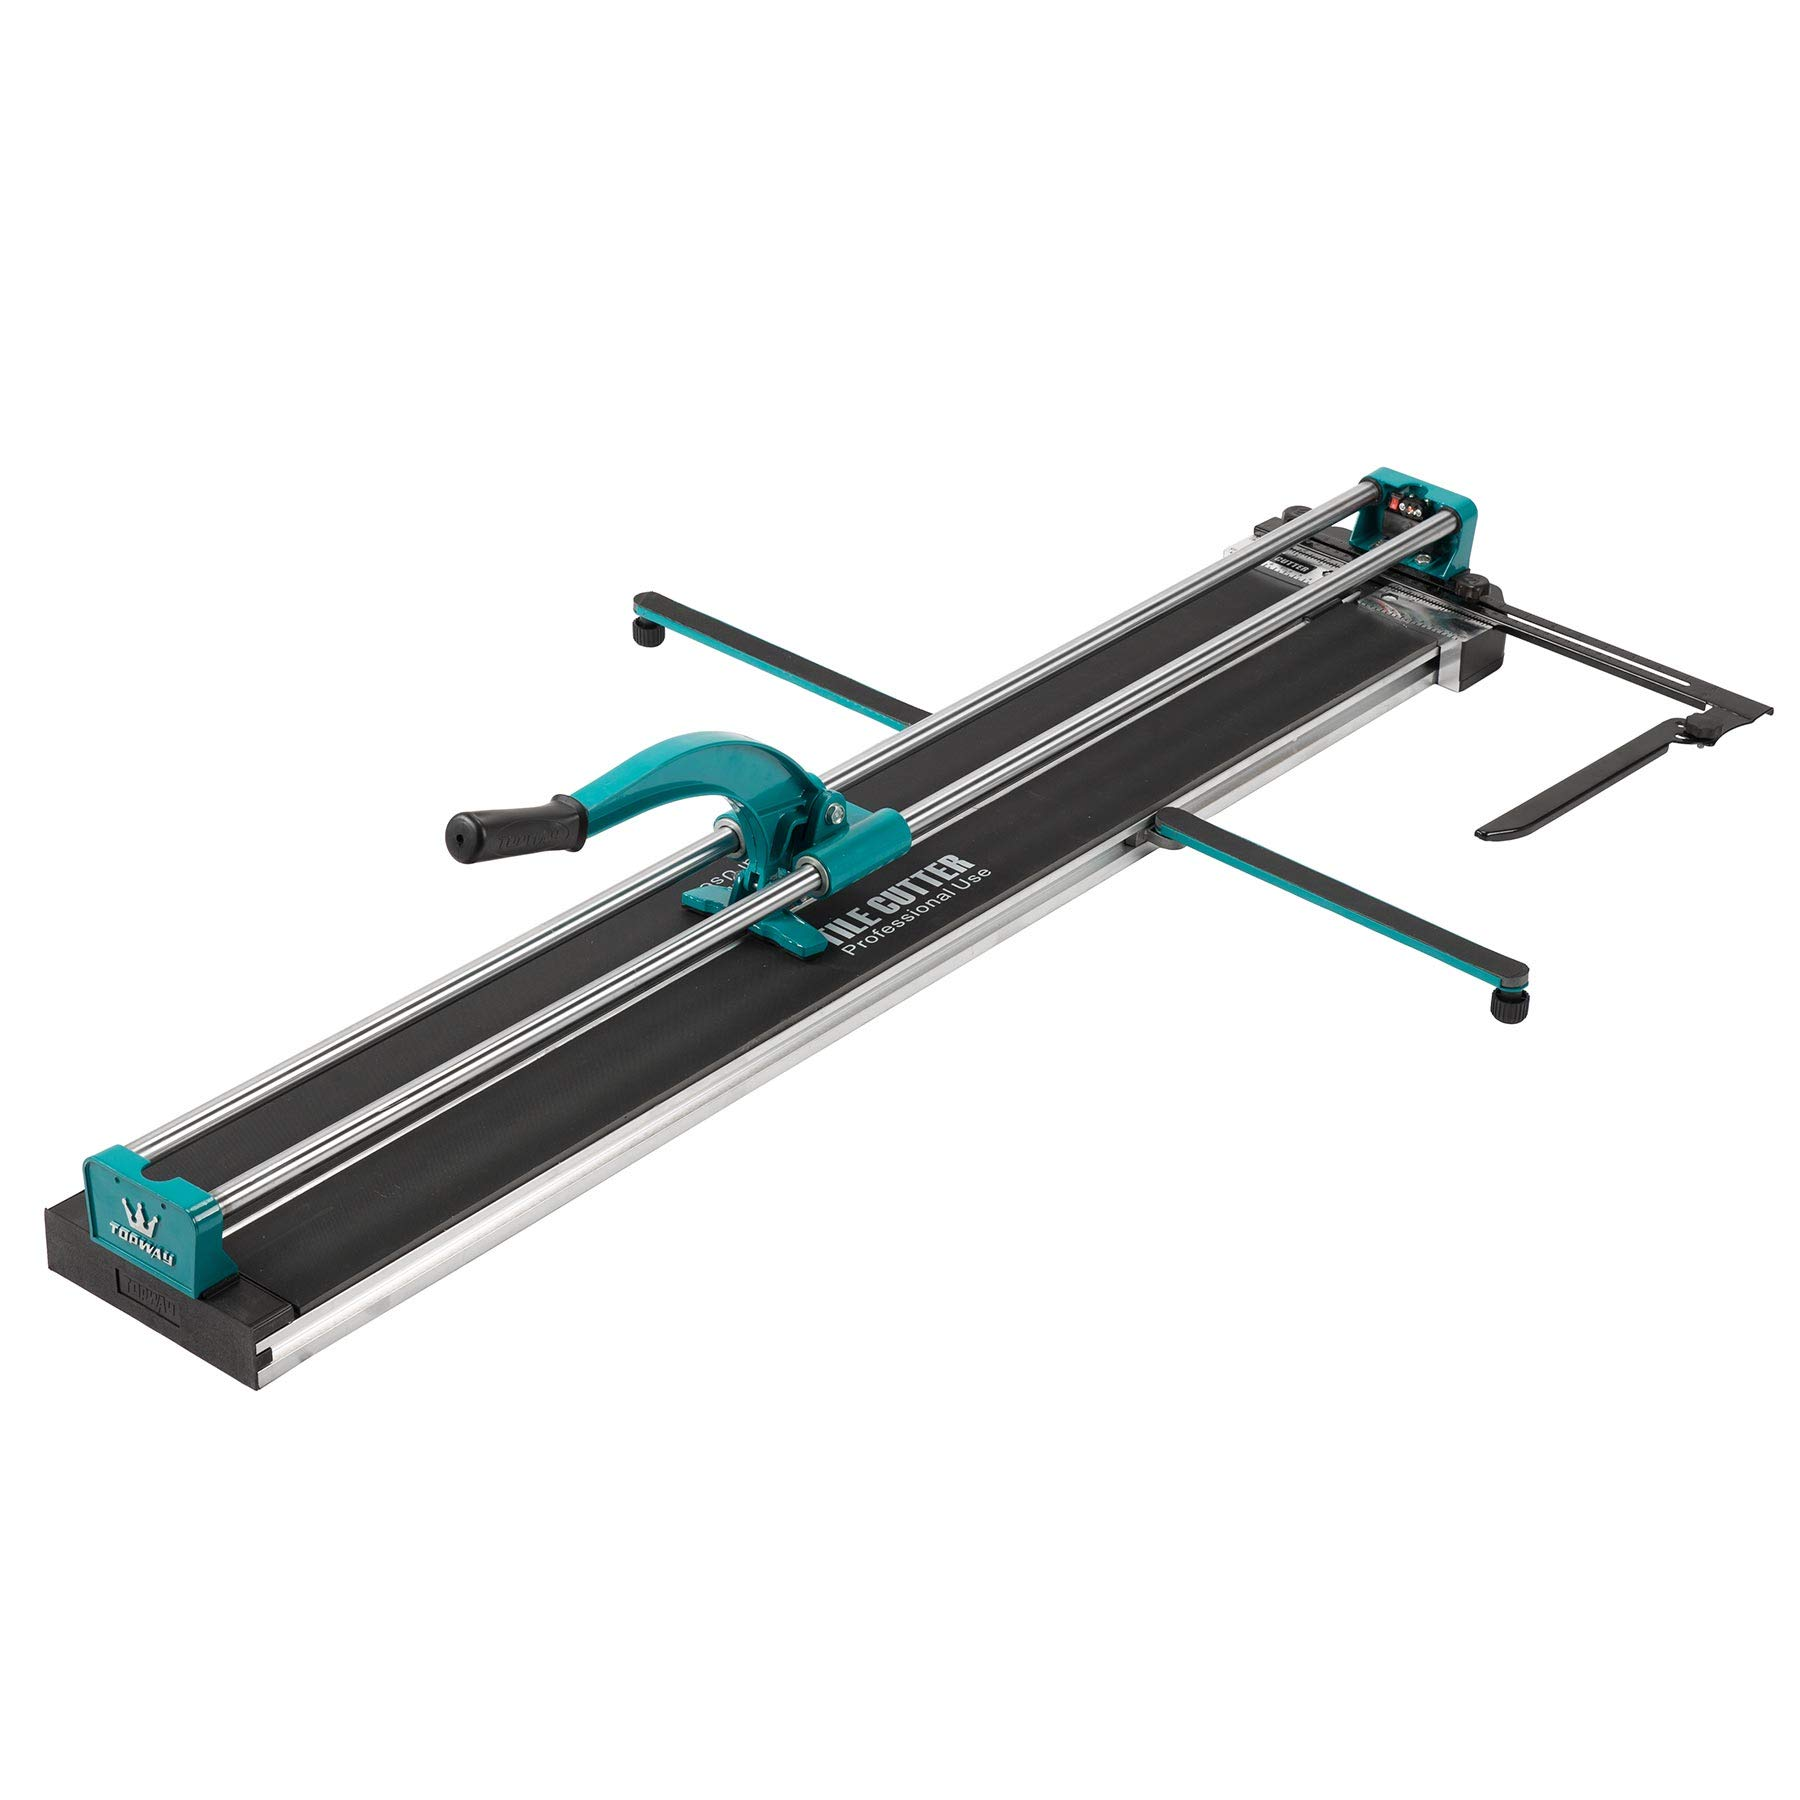 CO-Z Manual Tile Cutter 48 Inch Cutting Length Professional Porcelain Ceramic Floor Tile Cutter Machine Adjustable Laser Guide for Precision Cutting (48 inch) by CO-Z